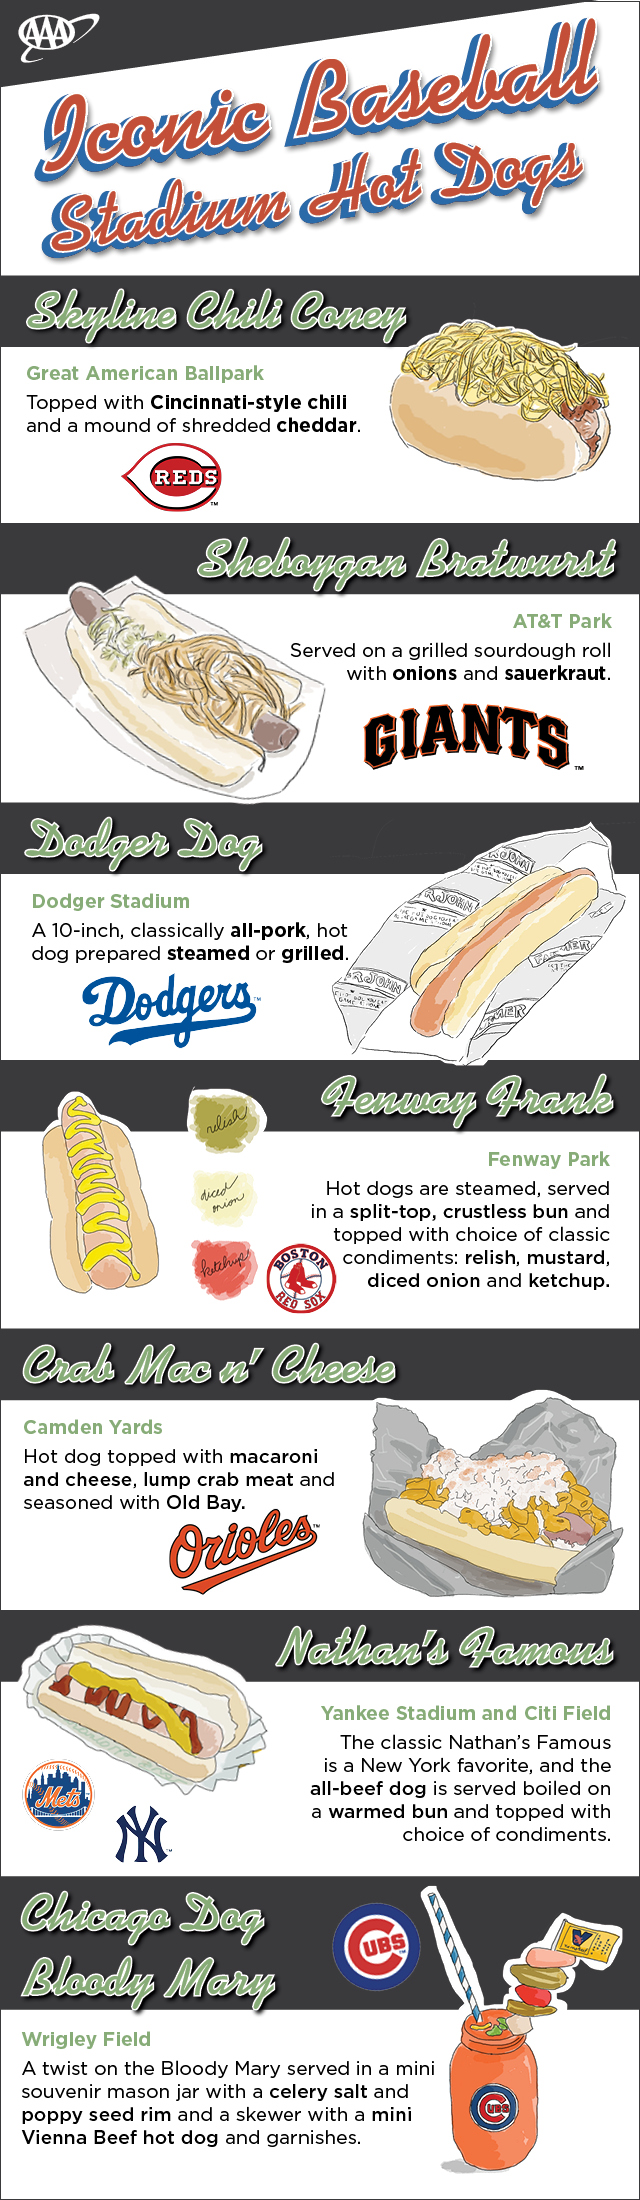 stadium hot dogs